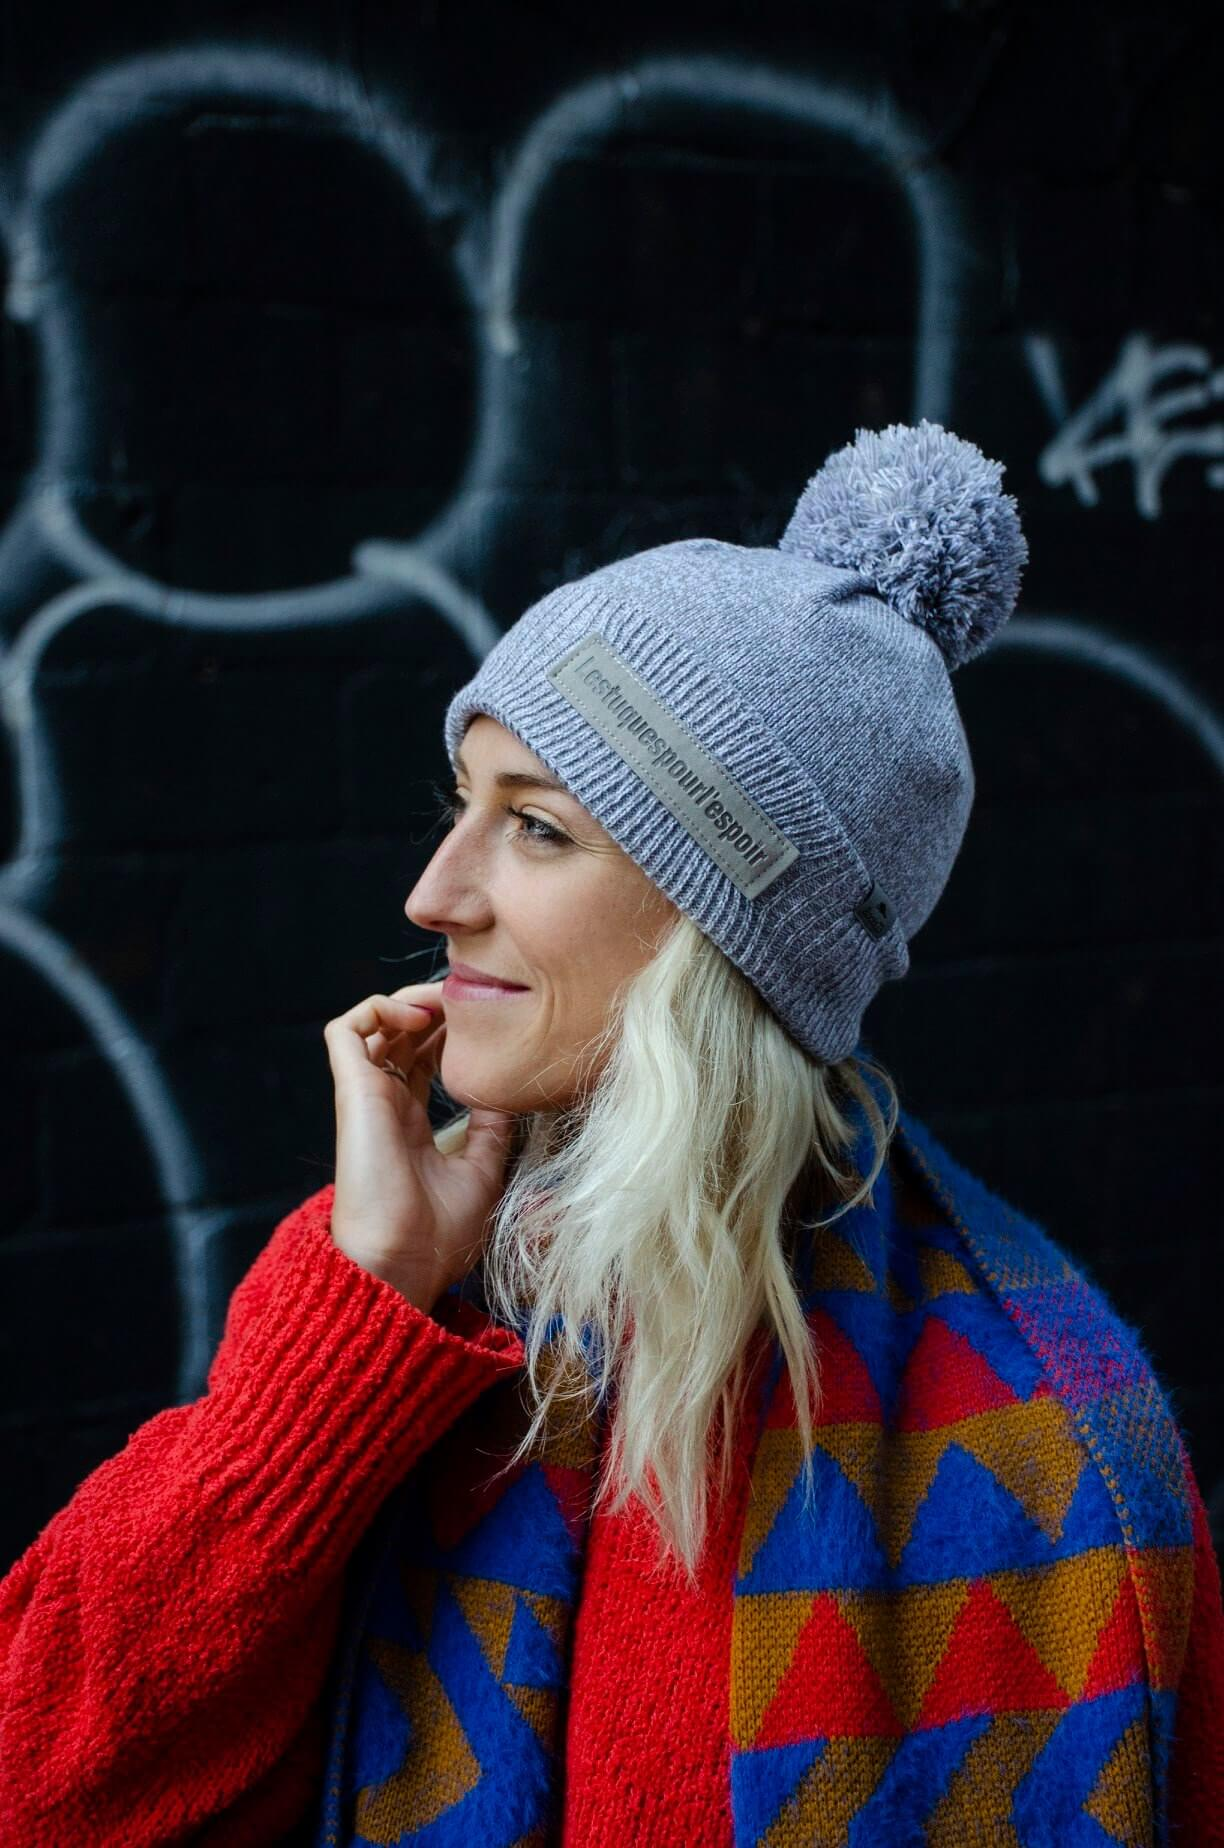 Canadian ice dancer Piper Gilles wearing a Hats for Hope toque.